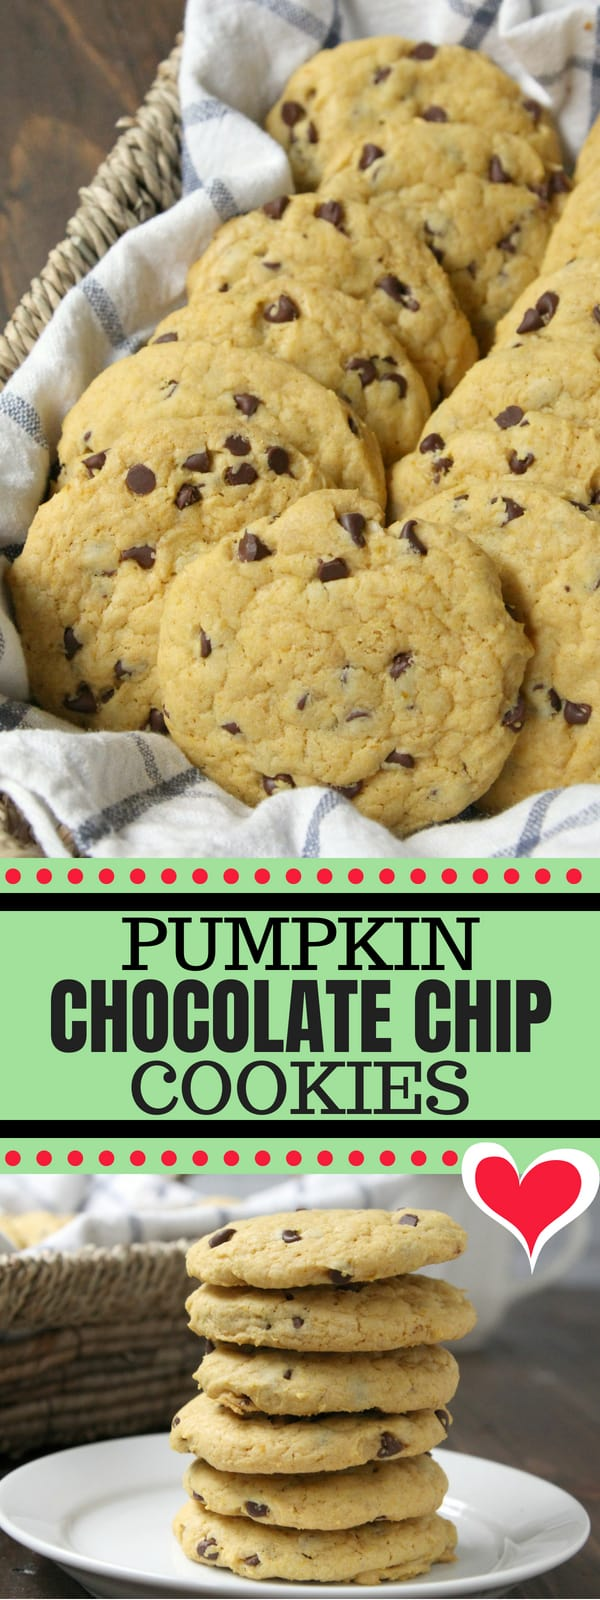 Pumpkin Chocolate Chip Cookies - easy from scratch pumpkin cookie recipe